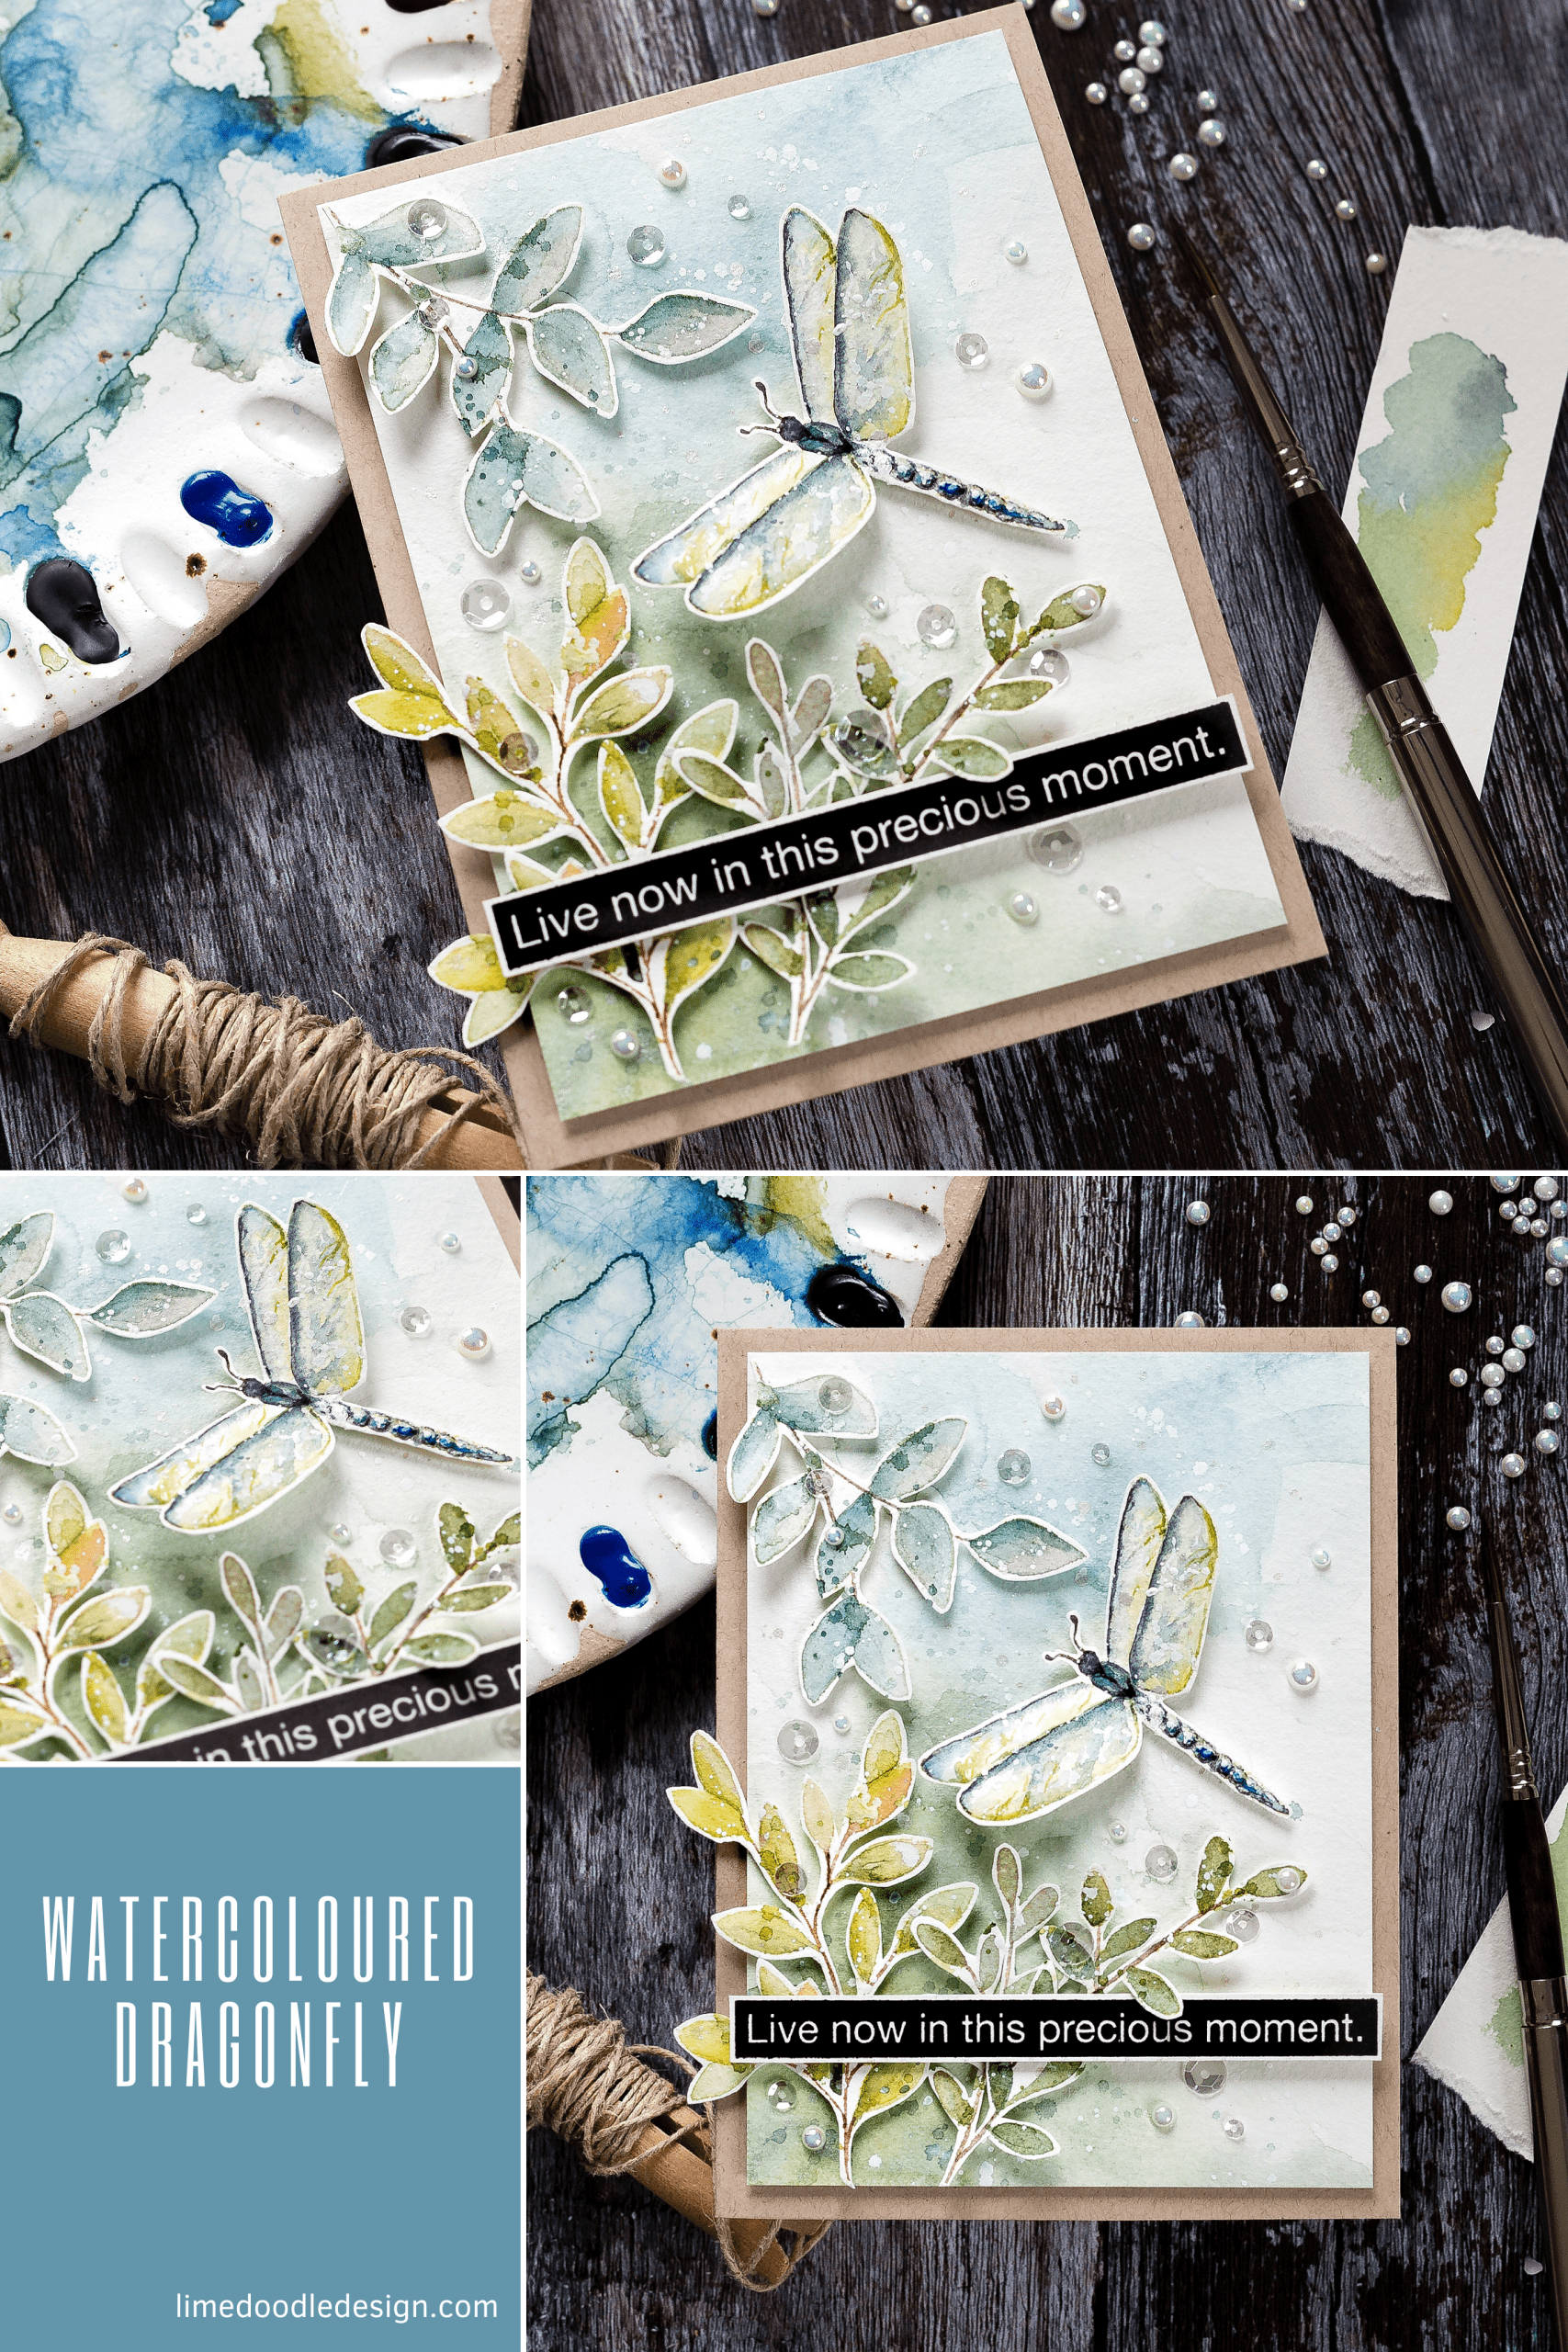 Video tutorial - watercoloured dragonfly handmade card by Debby Hughes #watercolor #tutorial #homemade